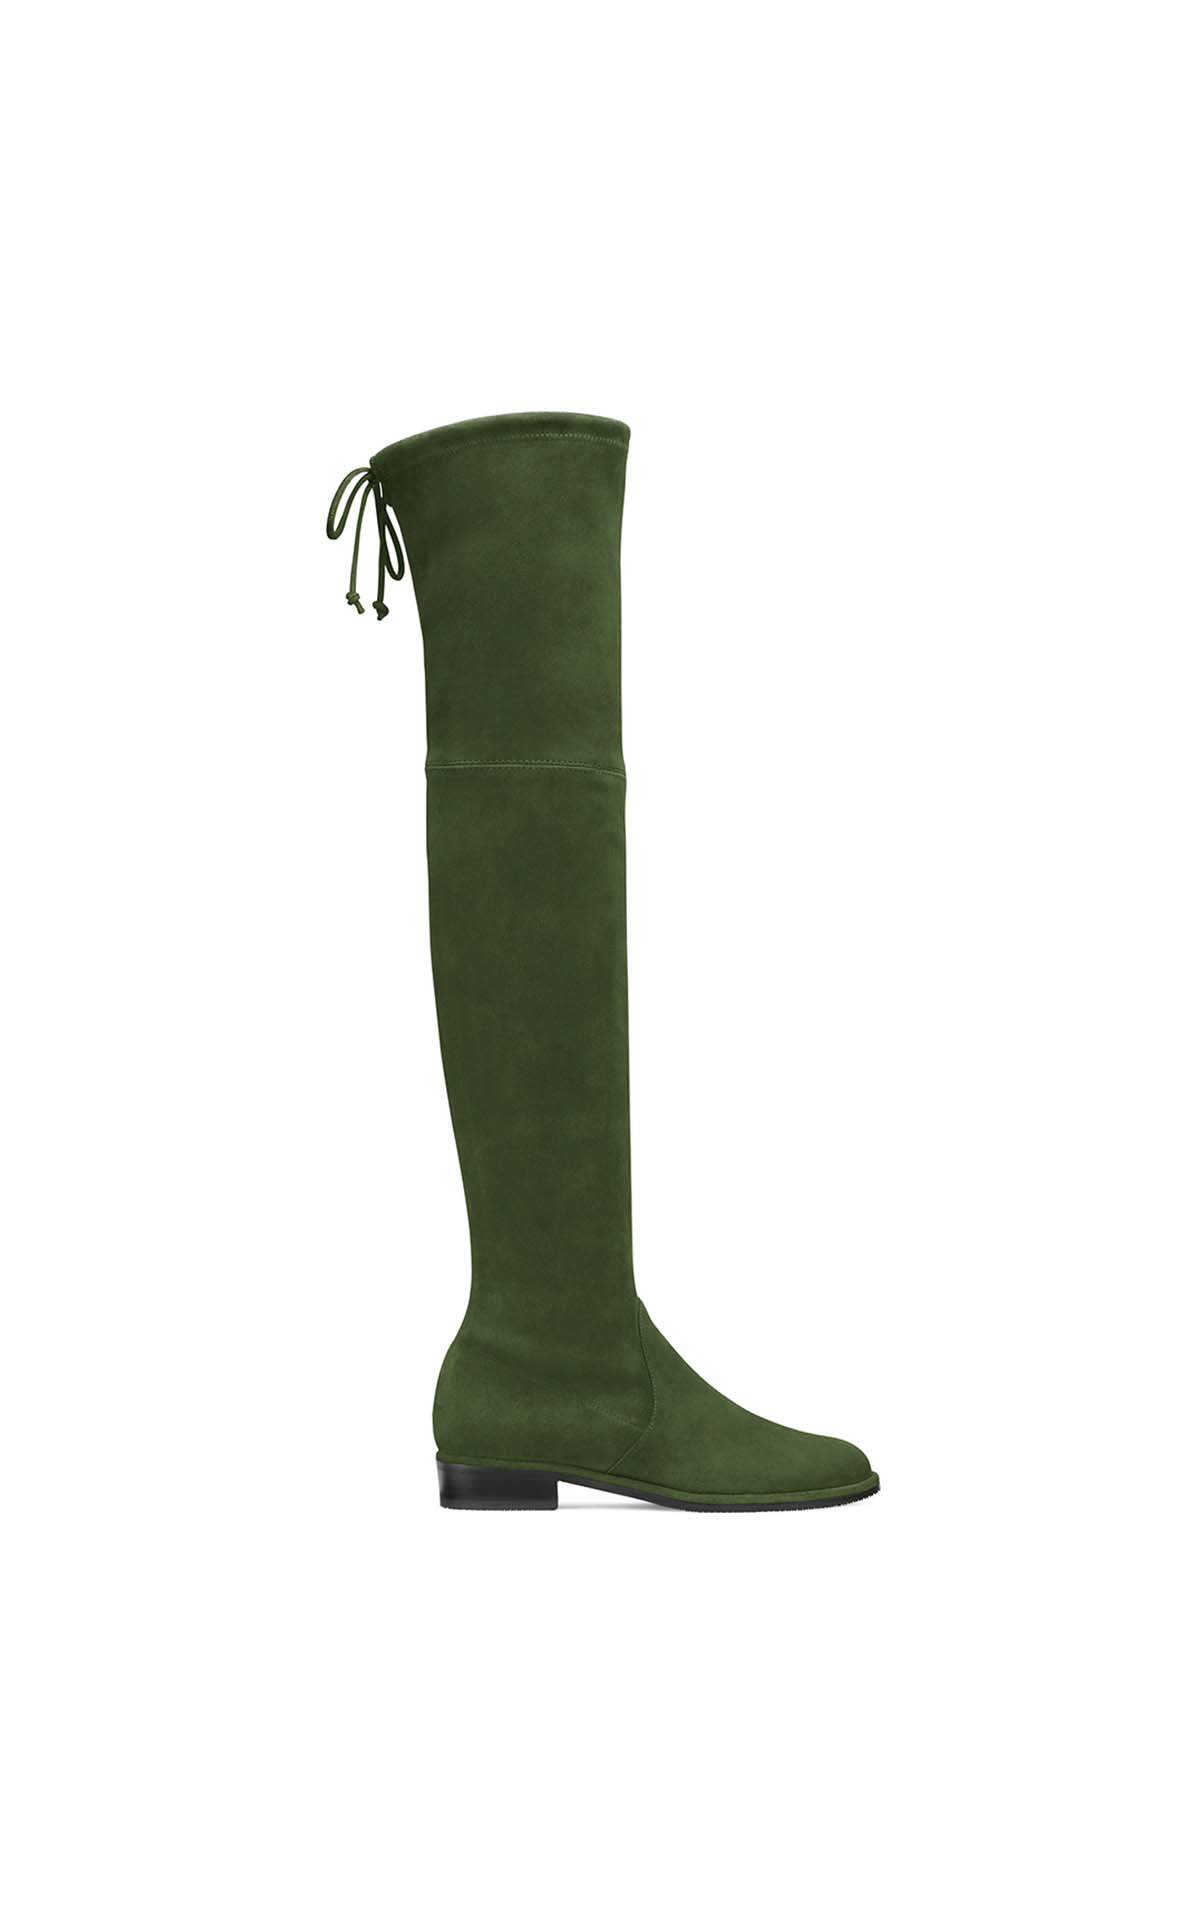 Stuart Weitzman lowland over the knee boot at The Bicester Village Shopping Collection